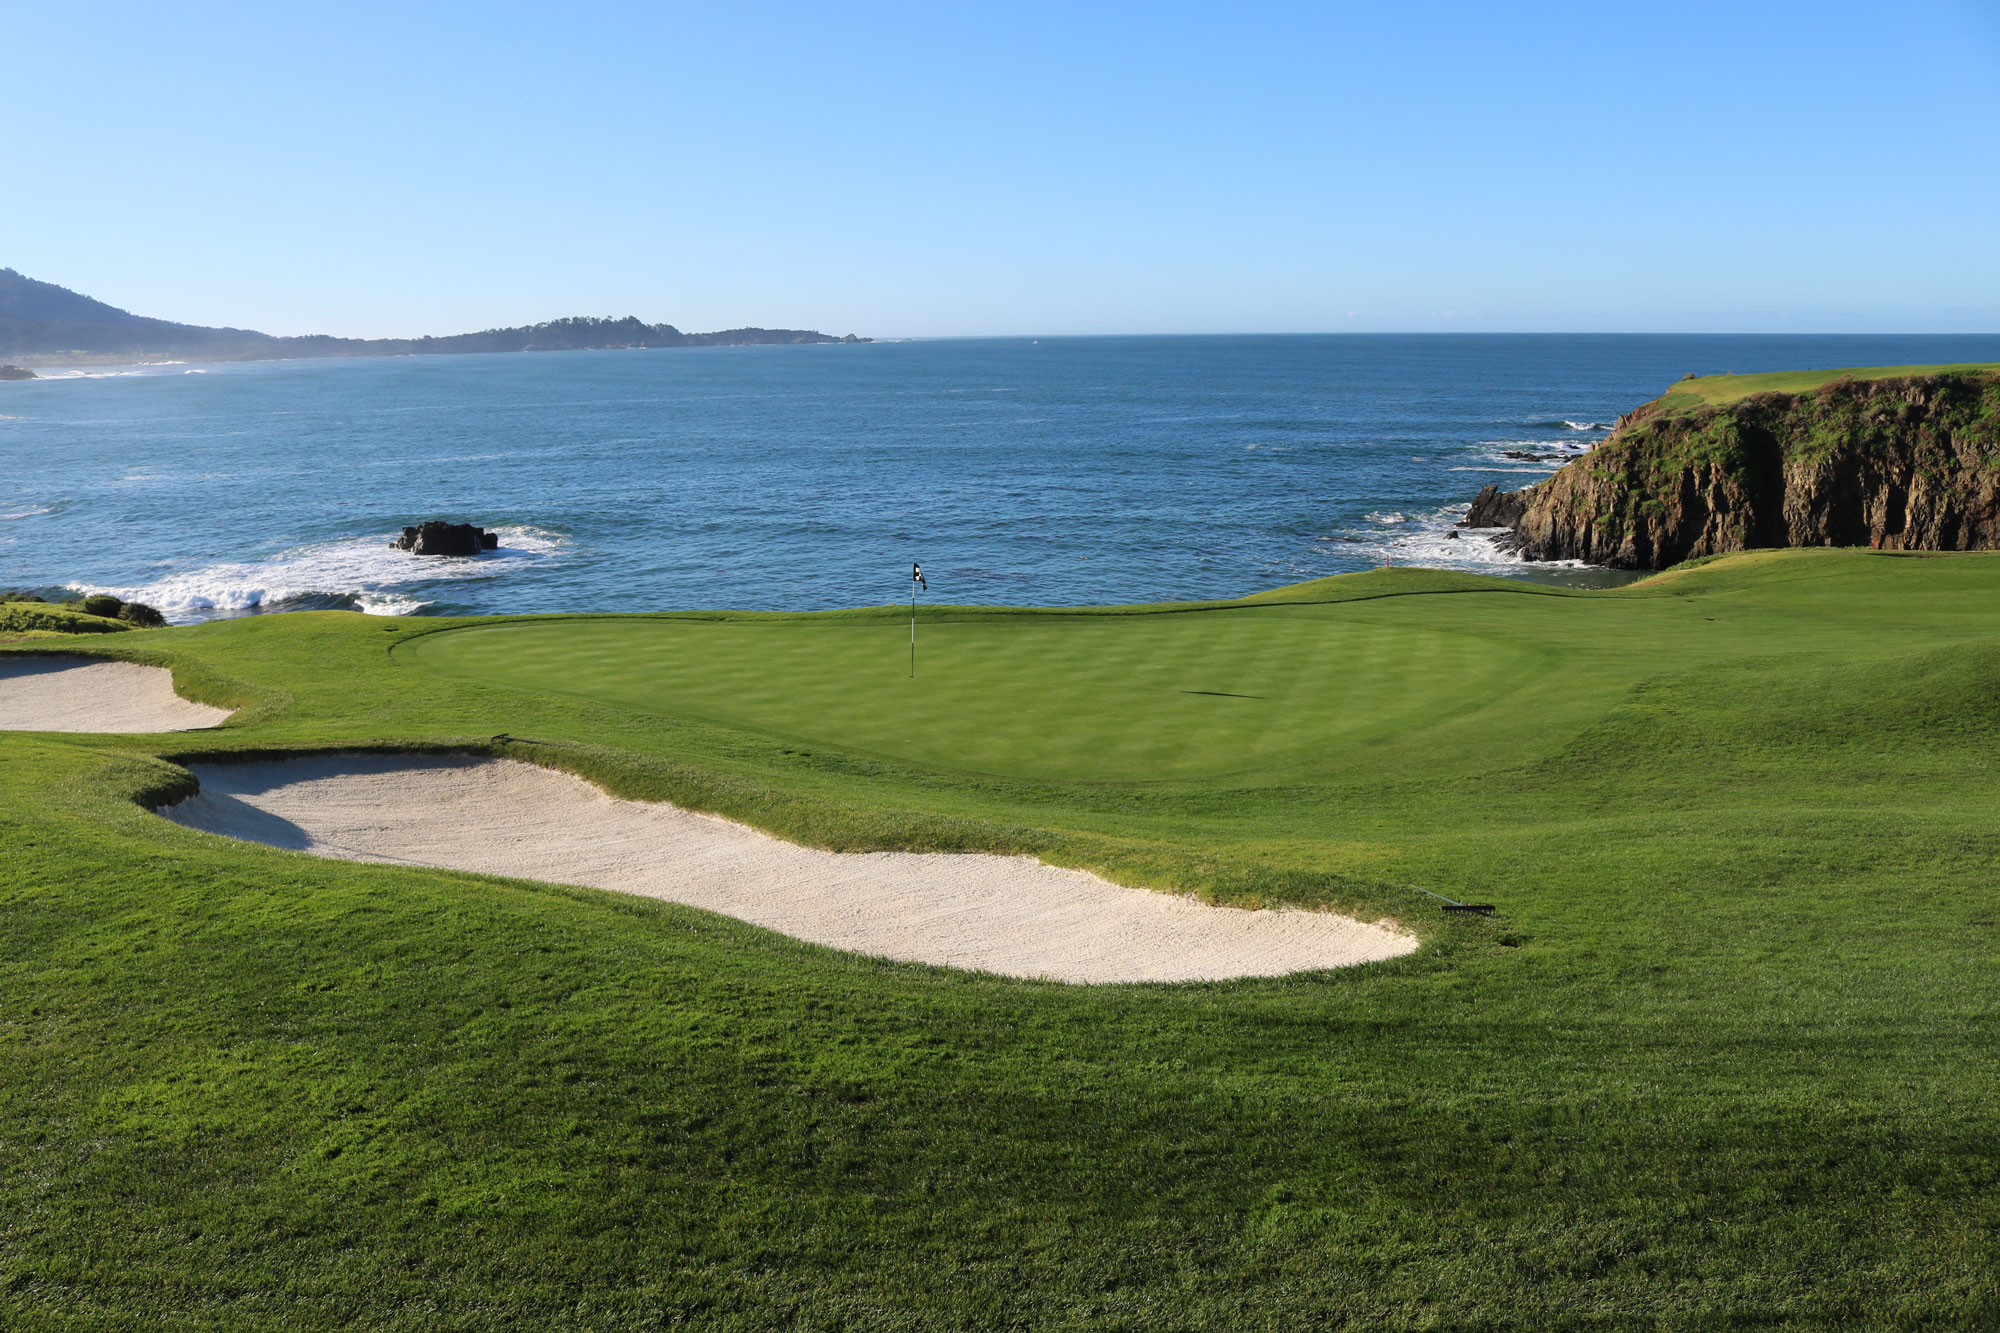 8th hole Pebble Beach